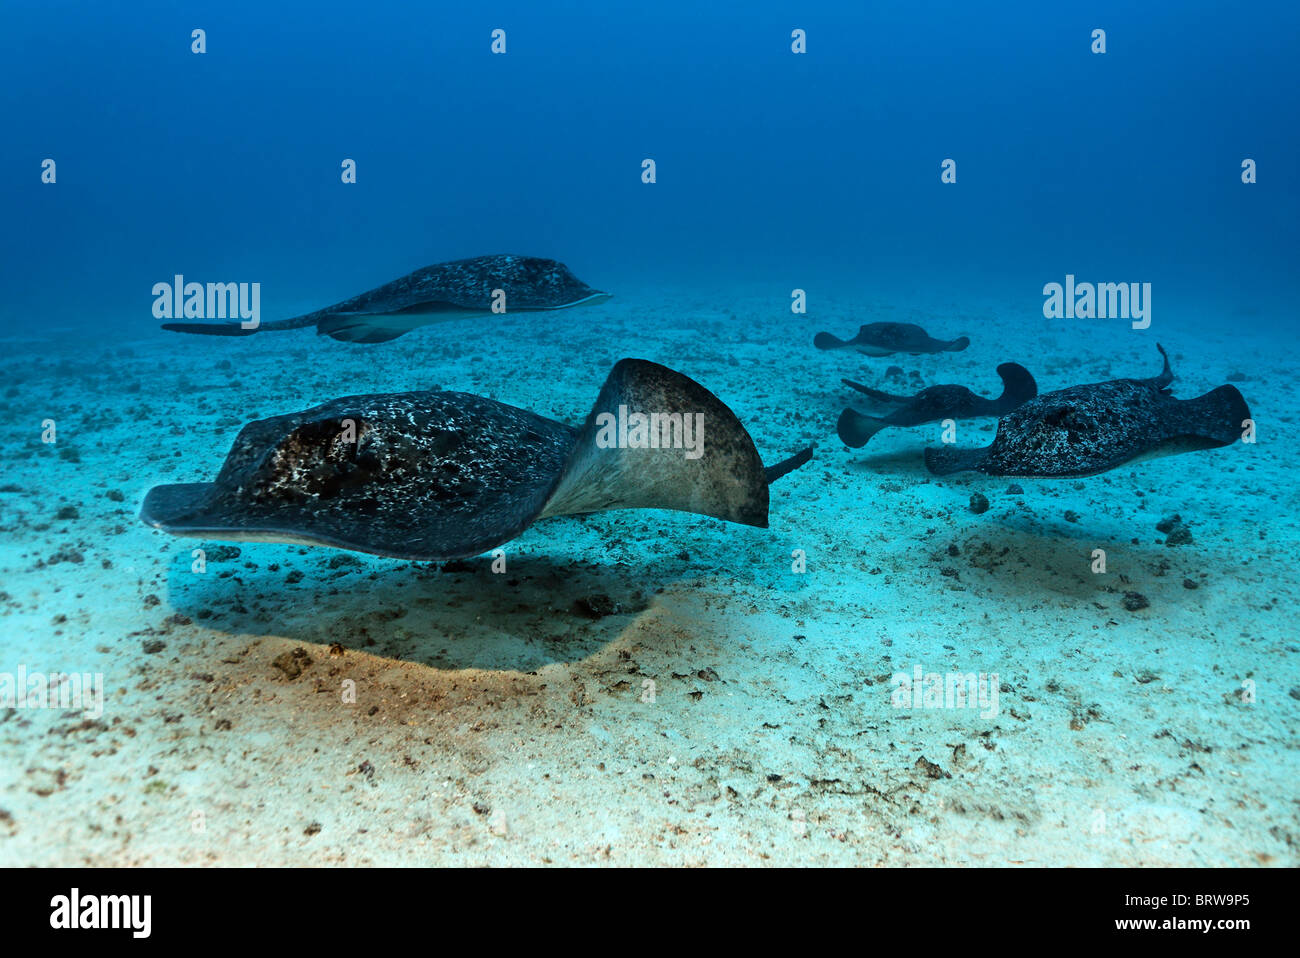 Shoal of Blackspotted Stingrays (Taeniura meyeni) gliding over sand bottom, Cocos Island, Costa Rica, Central America, - Stock Image